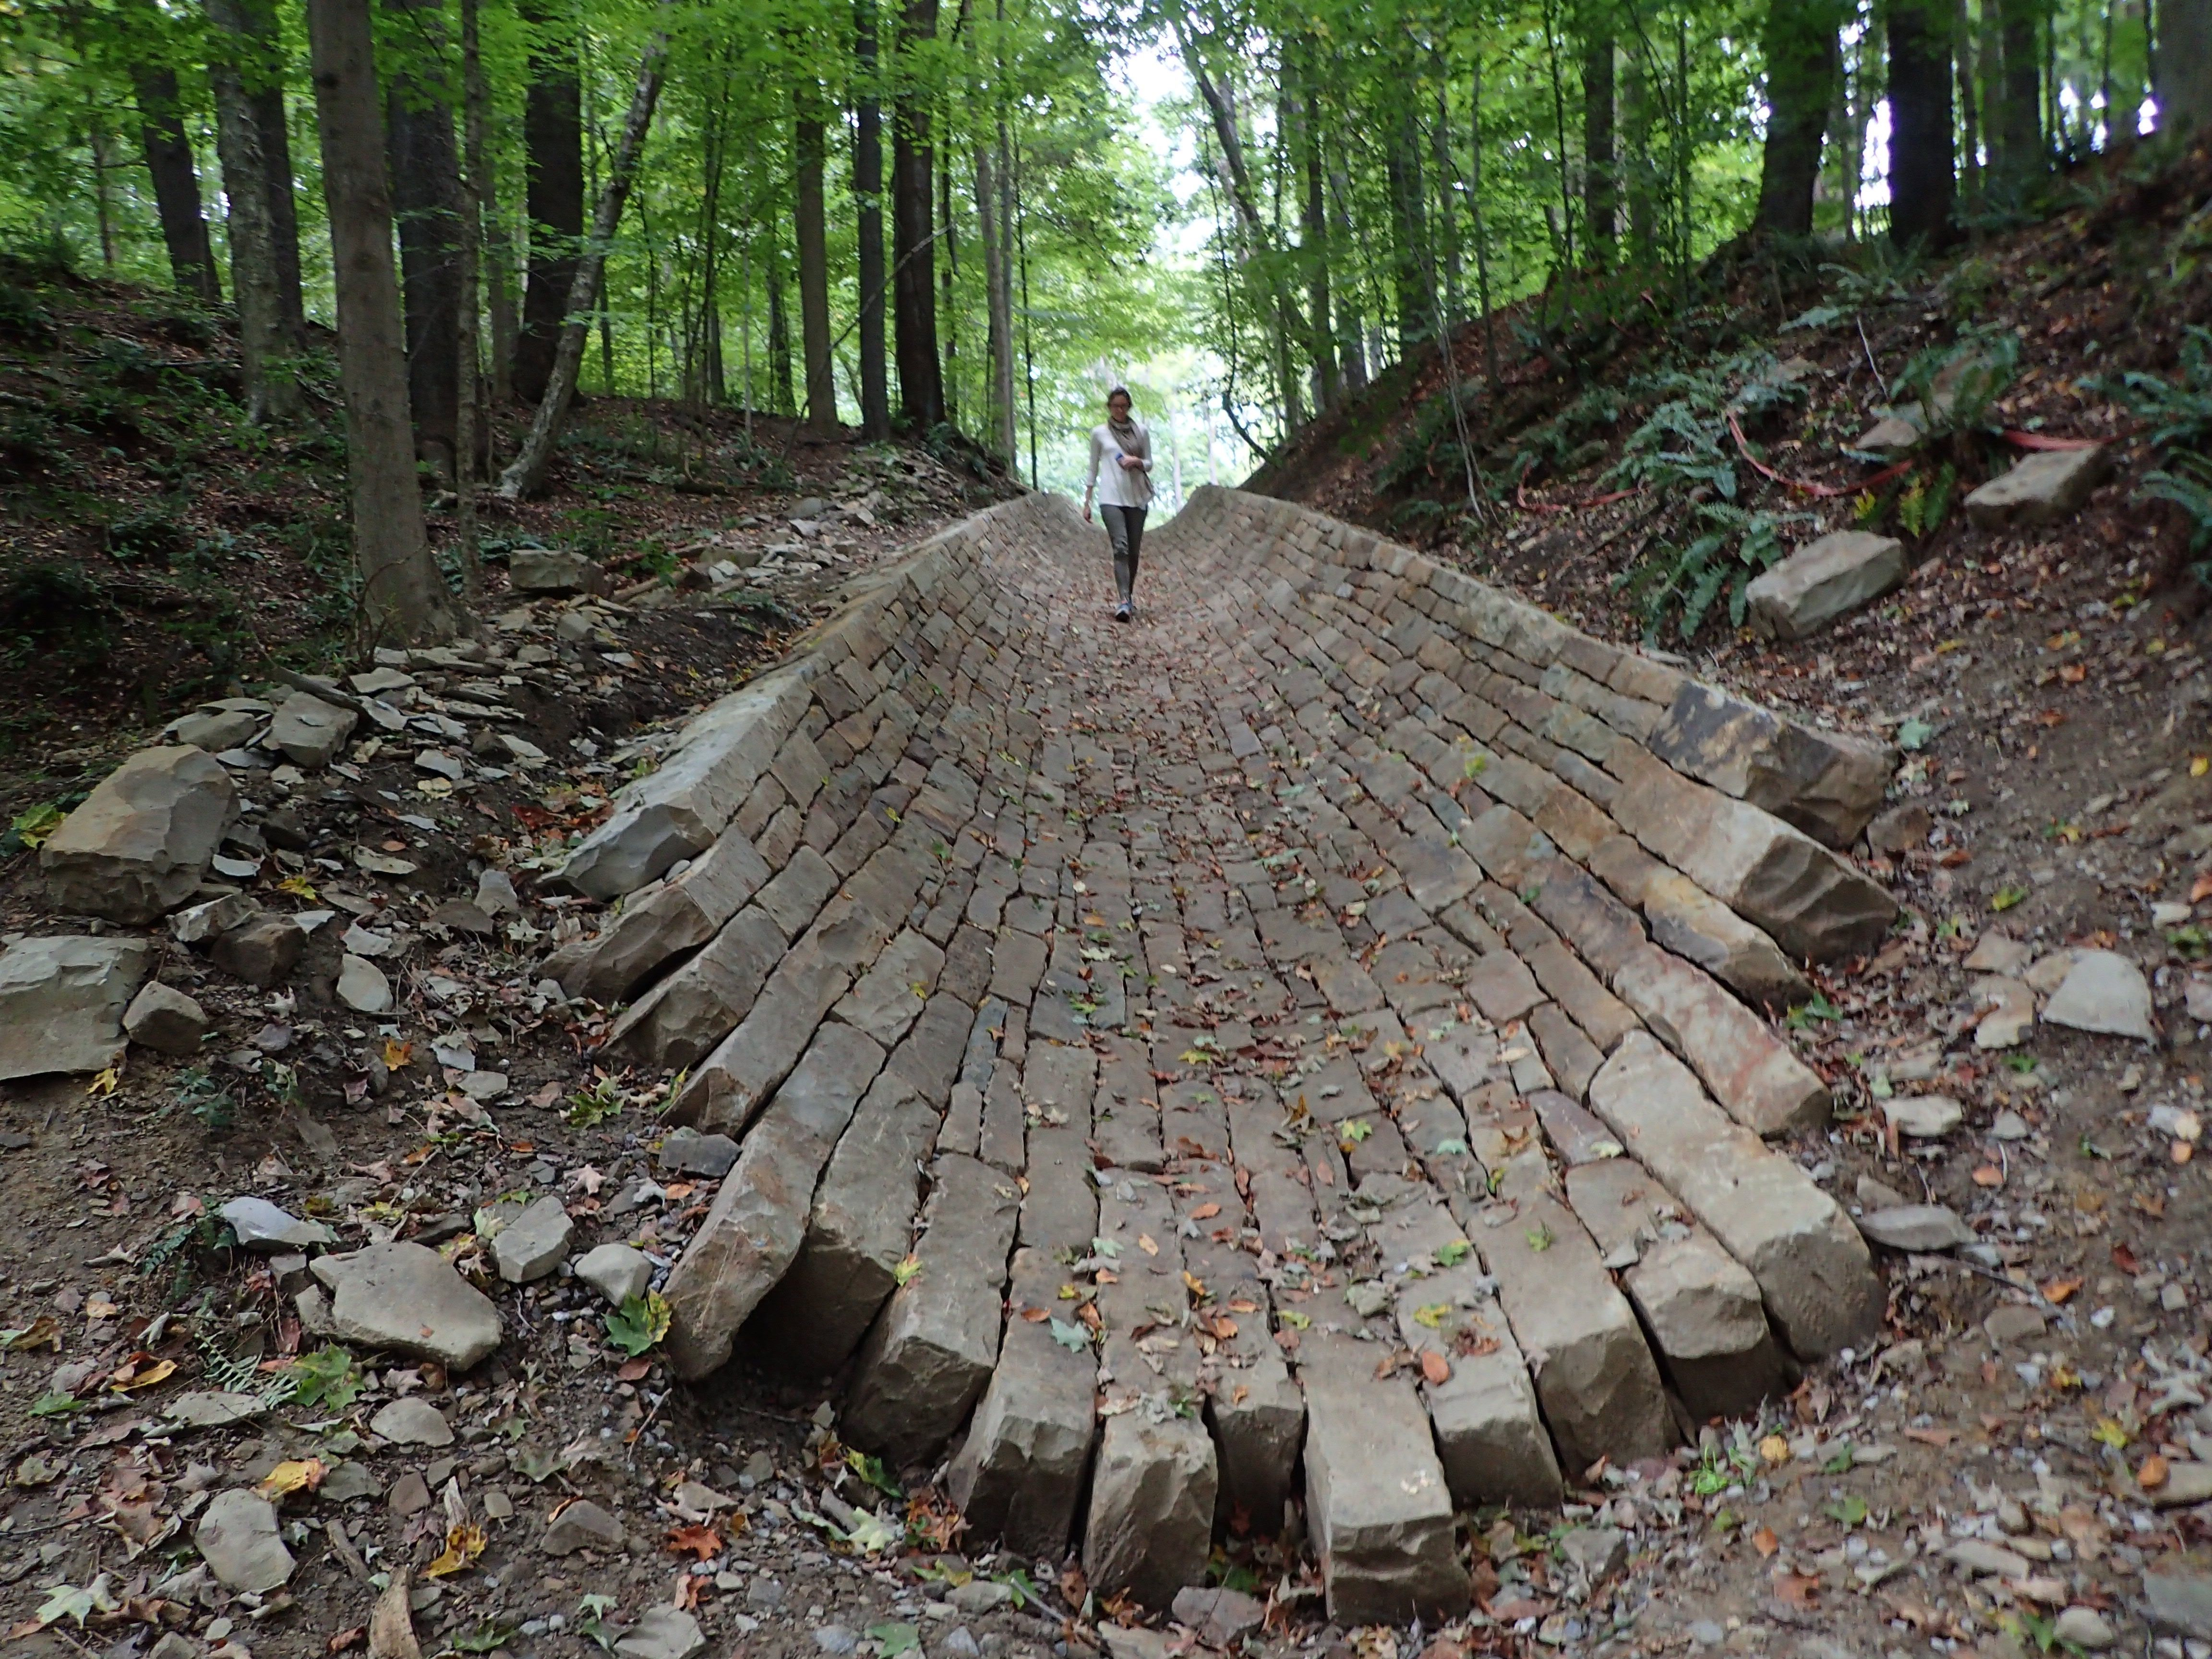 Making Sense Of The Hills Andy Goldsworthy At Cleveland